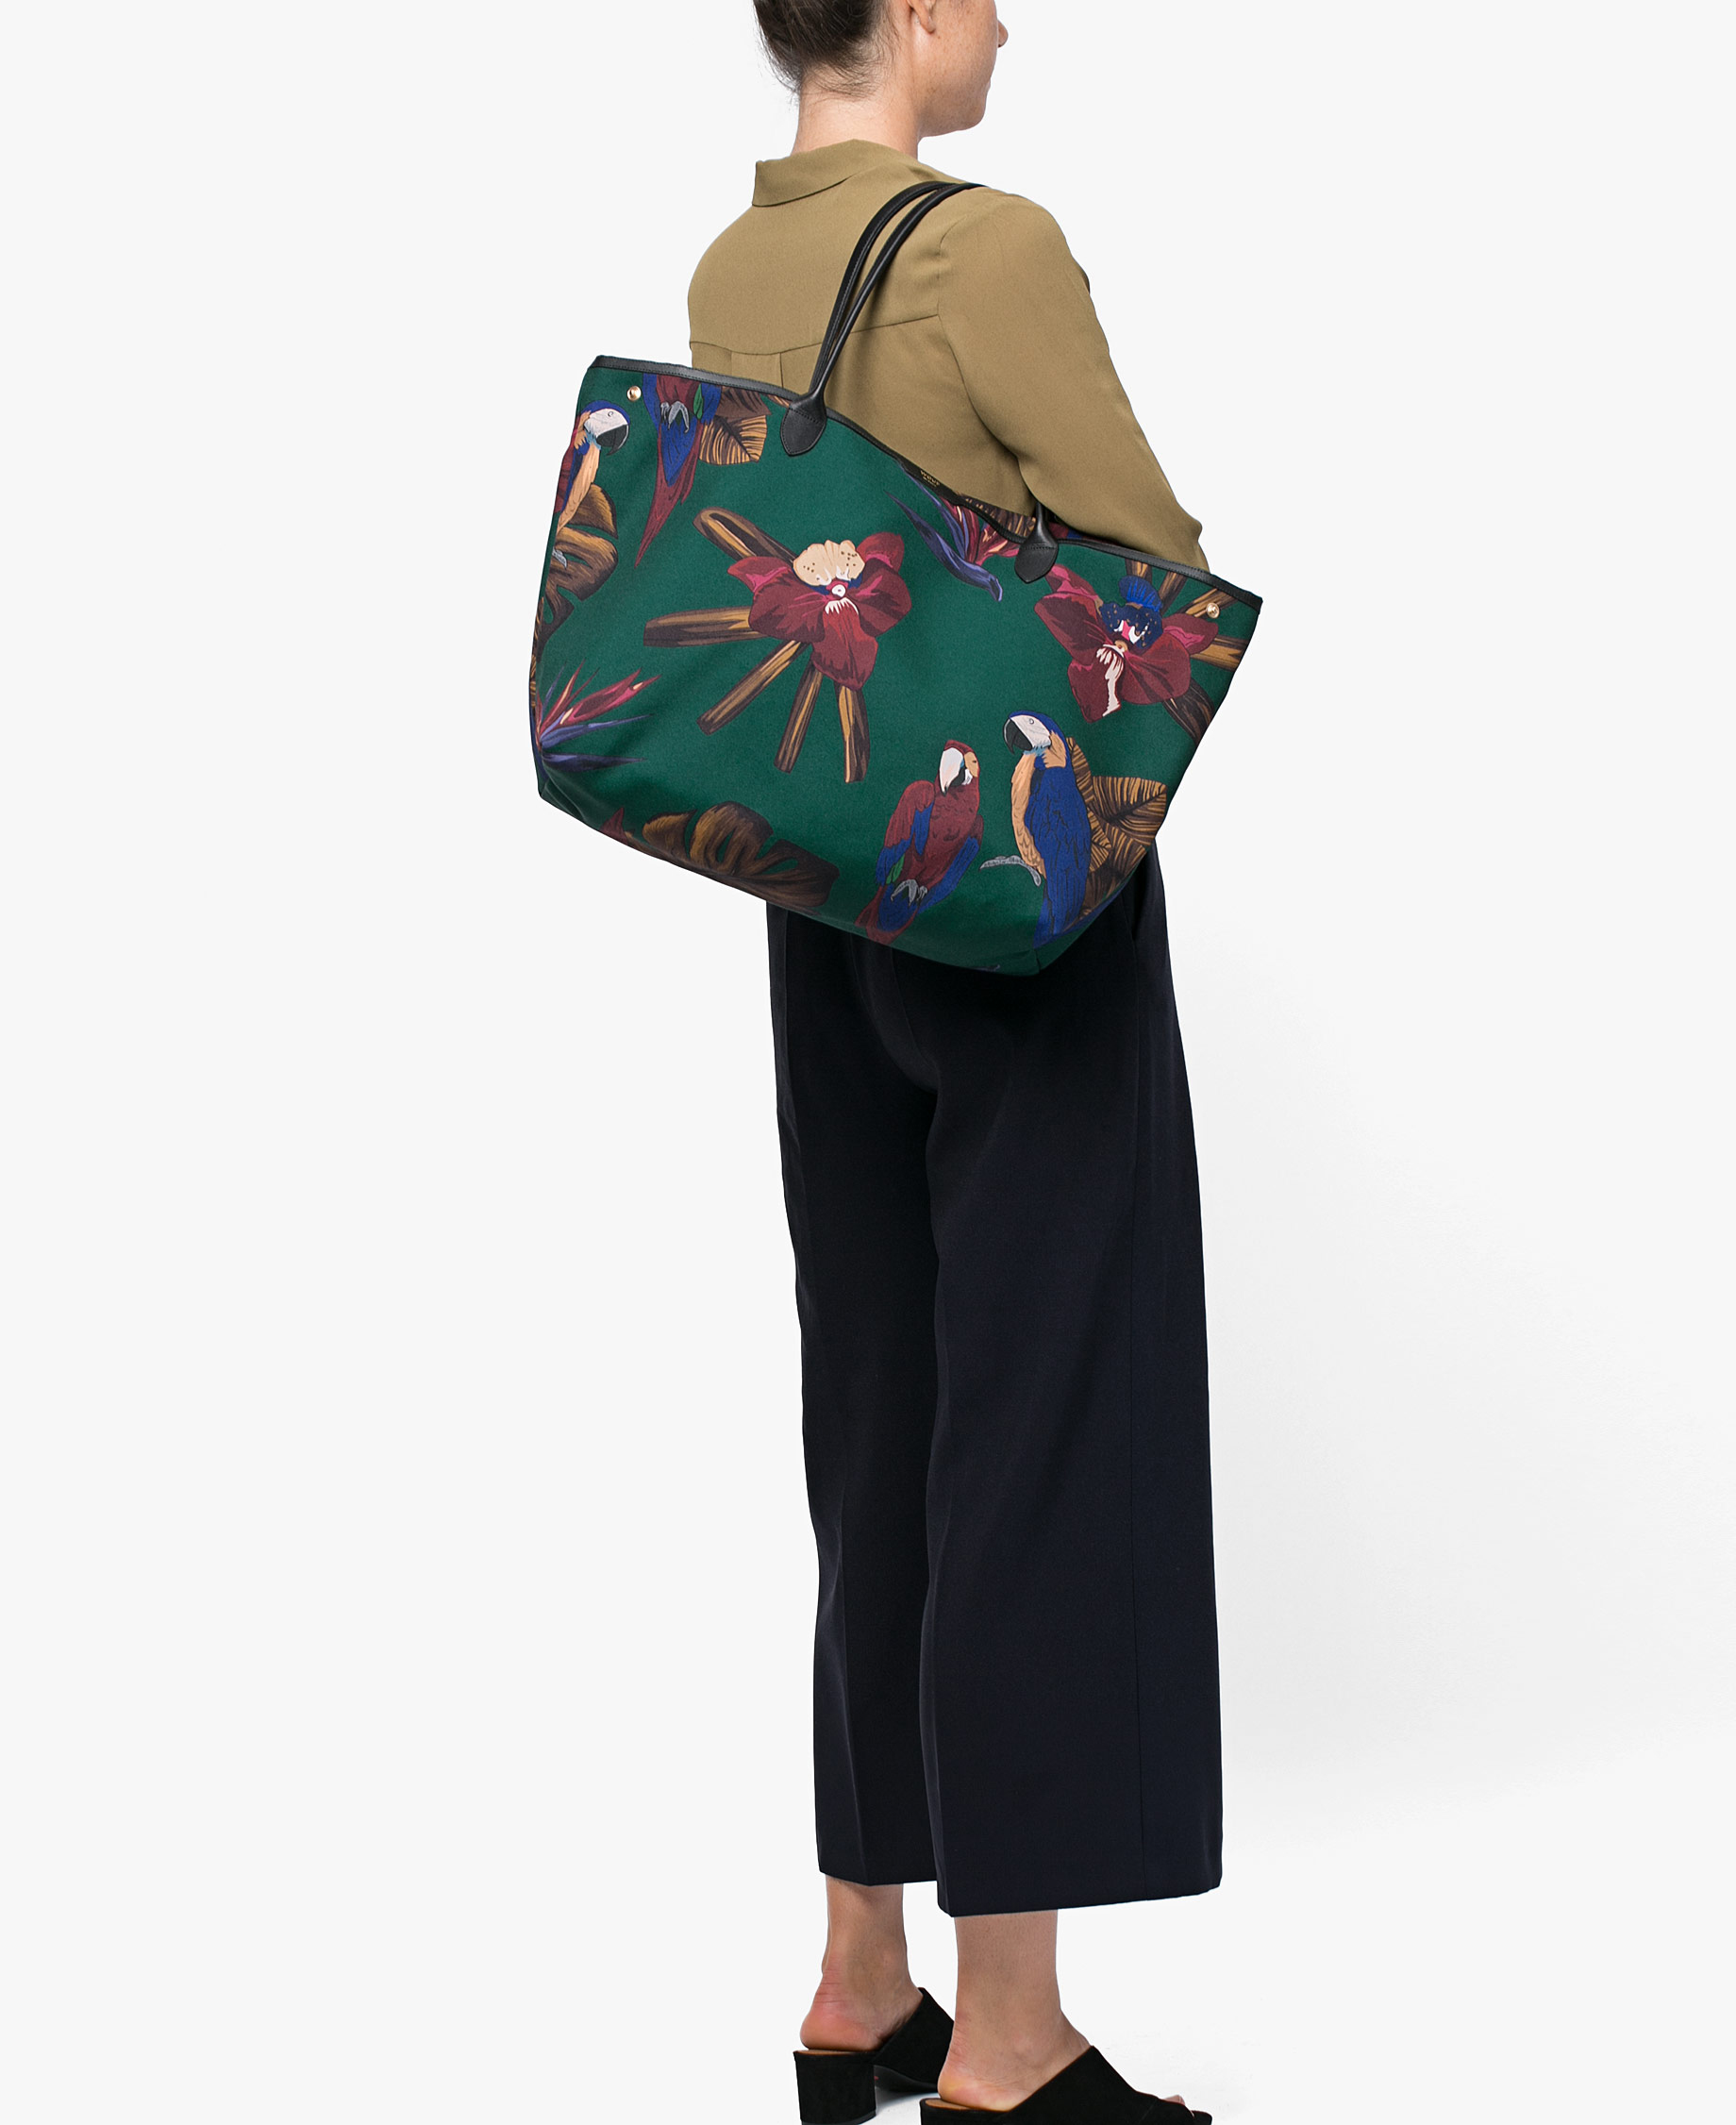 A woman with a big green bag